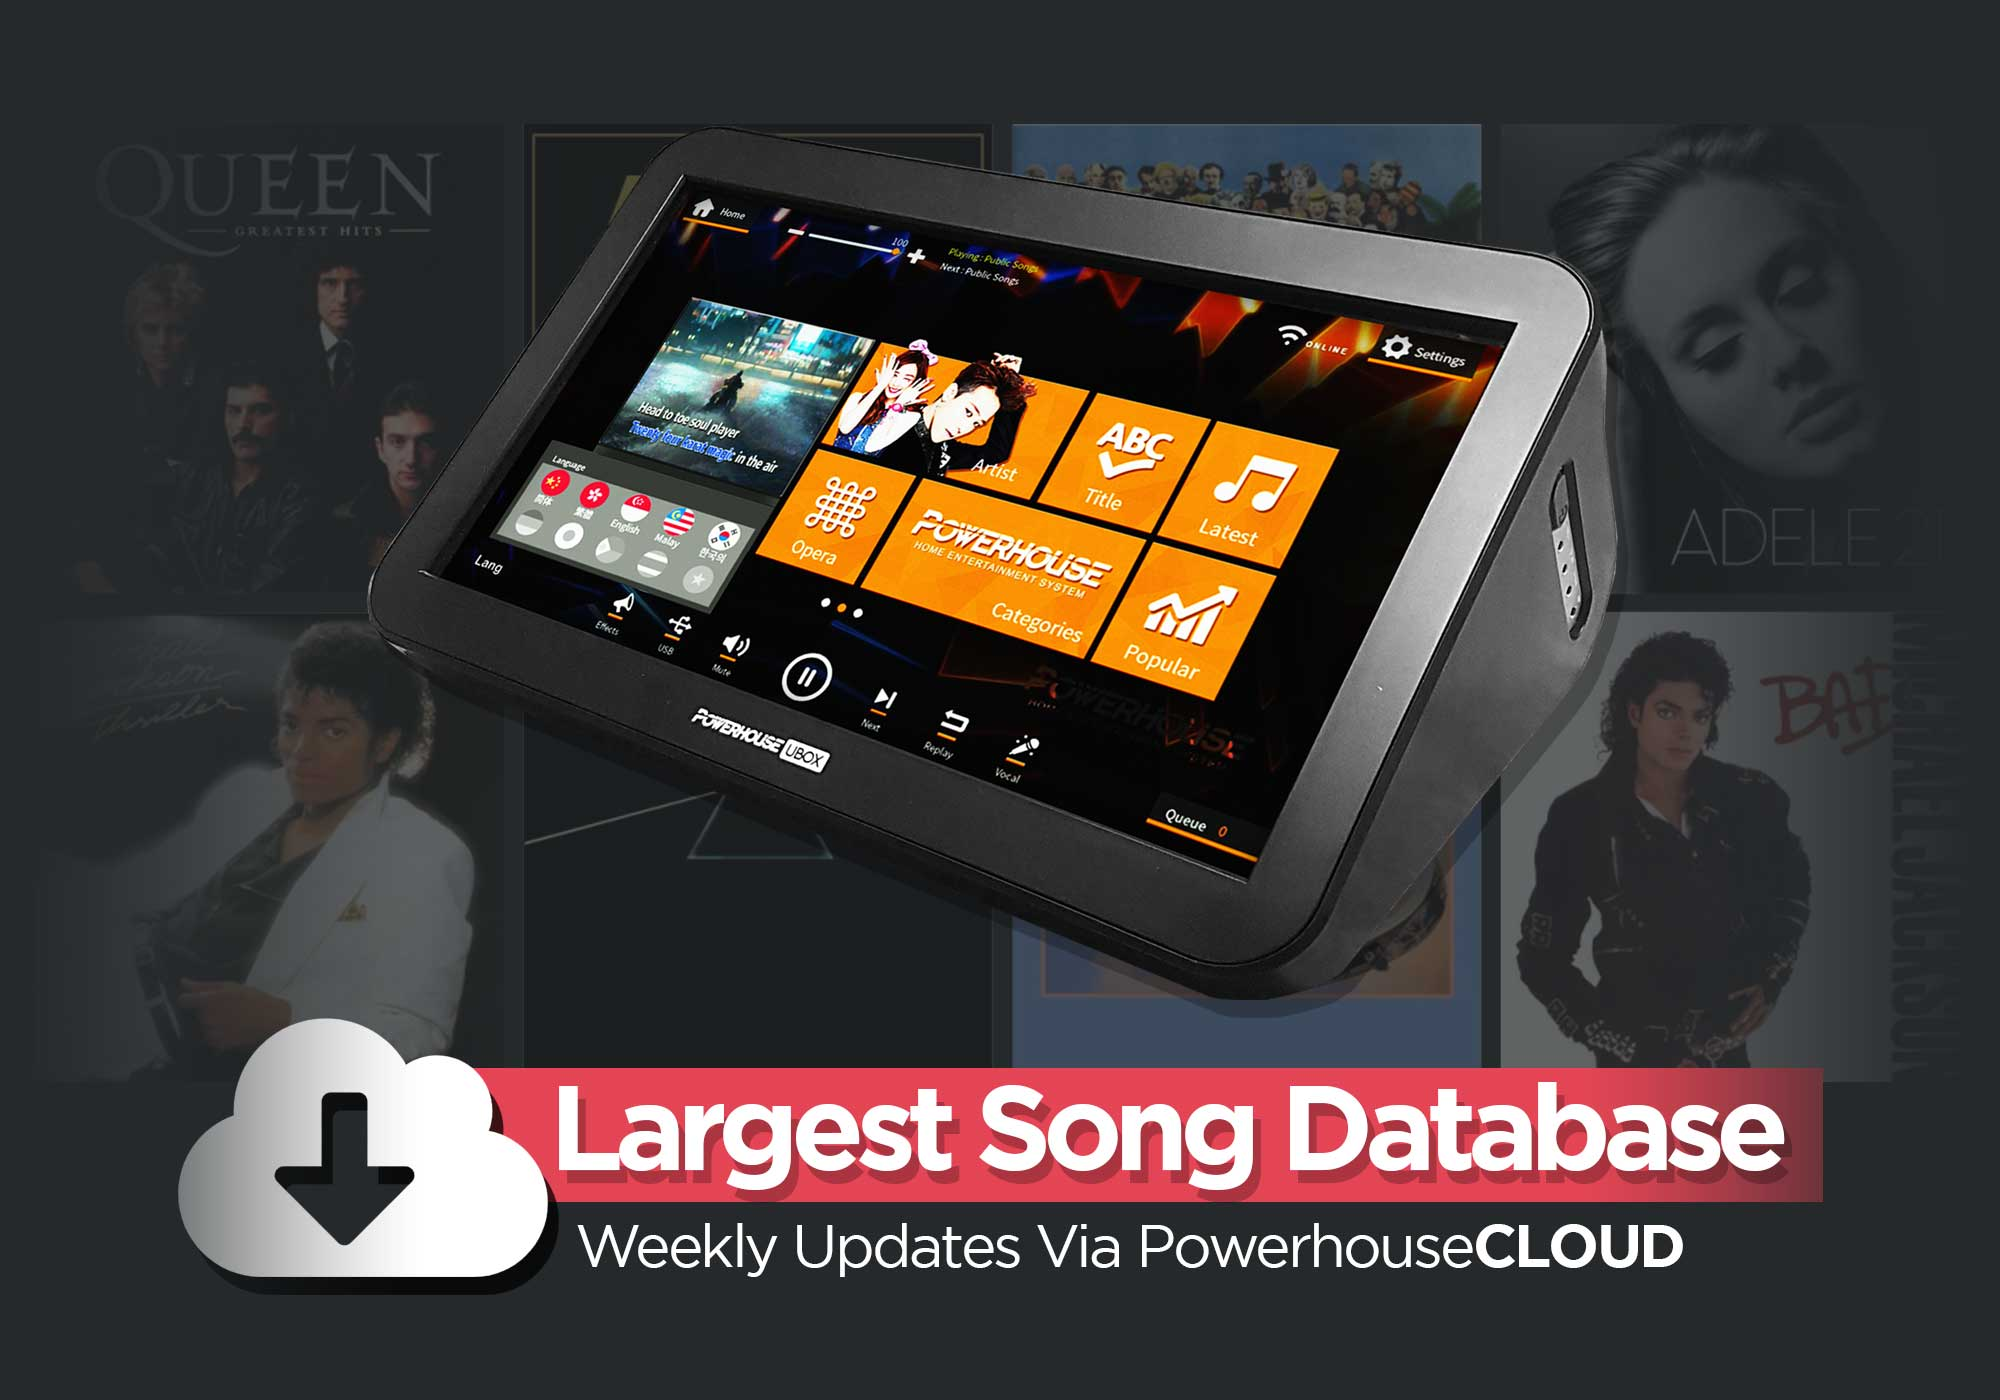 PowerhouseCLOUD Weekly Karaoke Song Updates